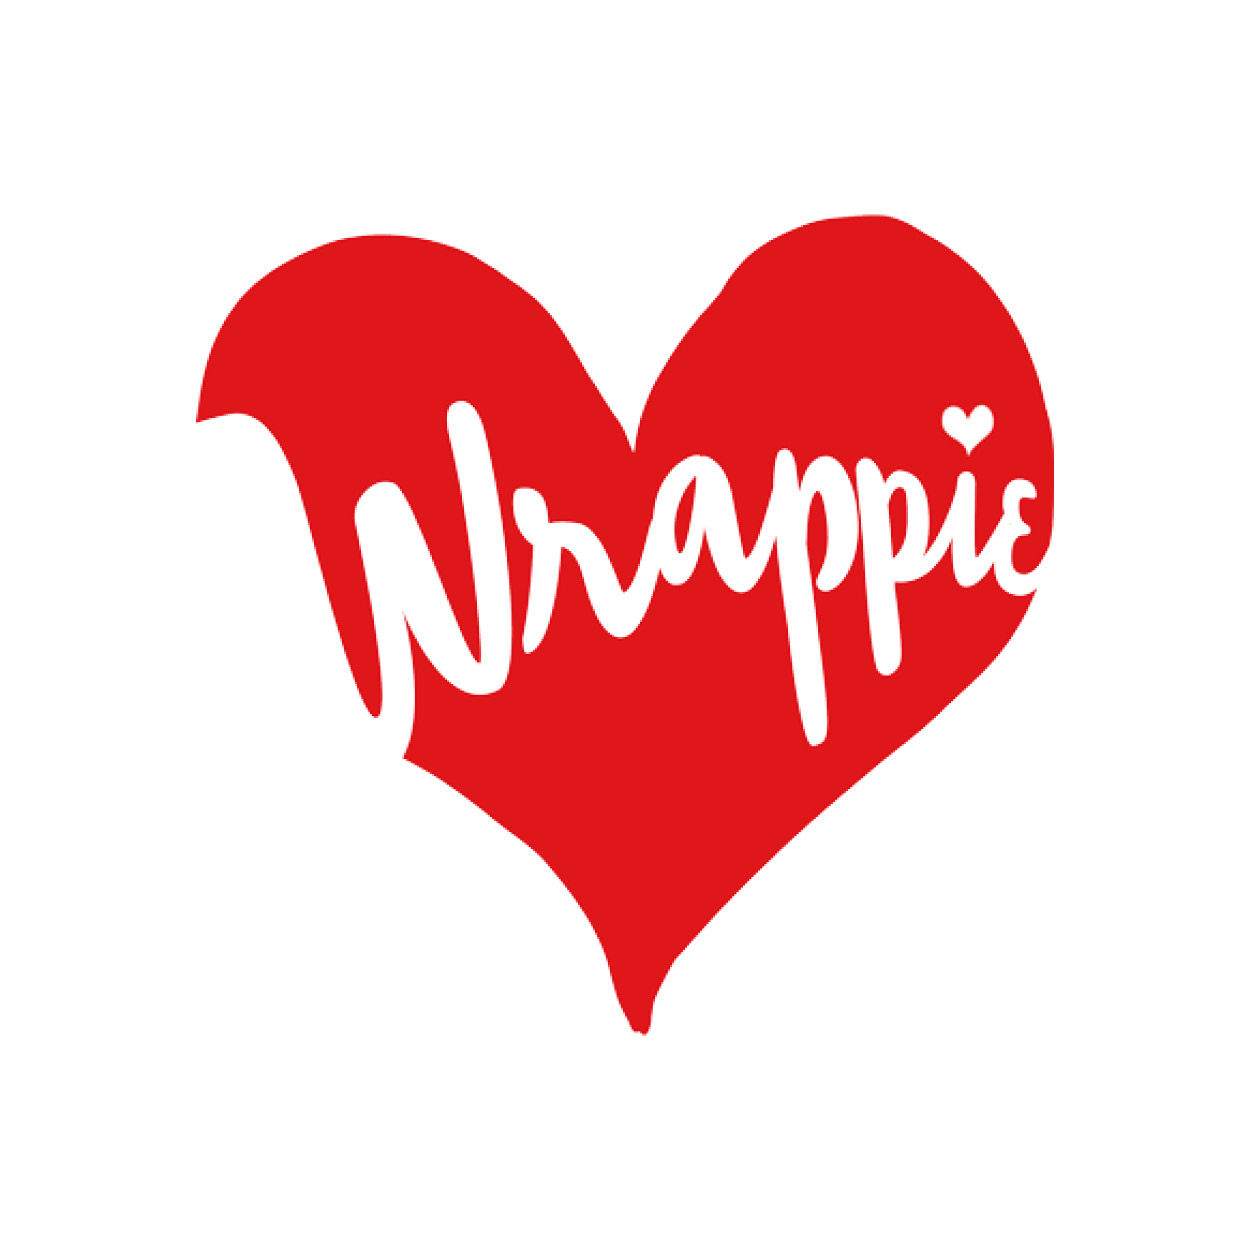 Wrappie